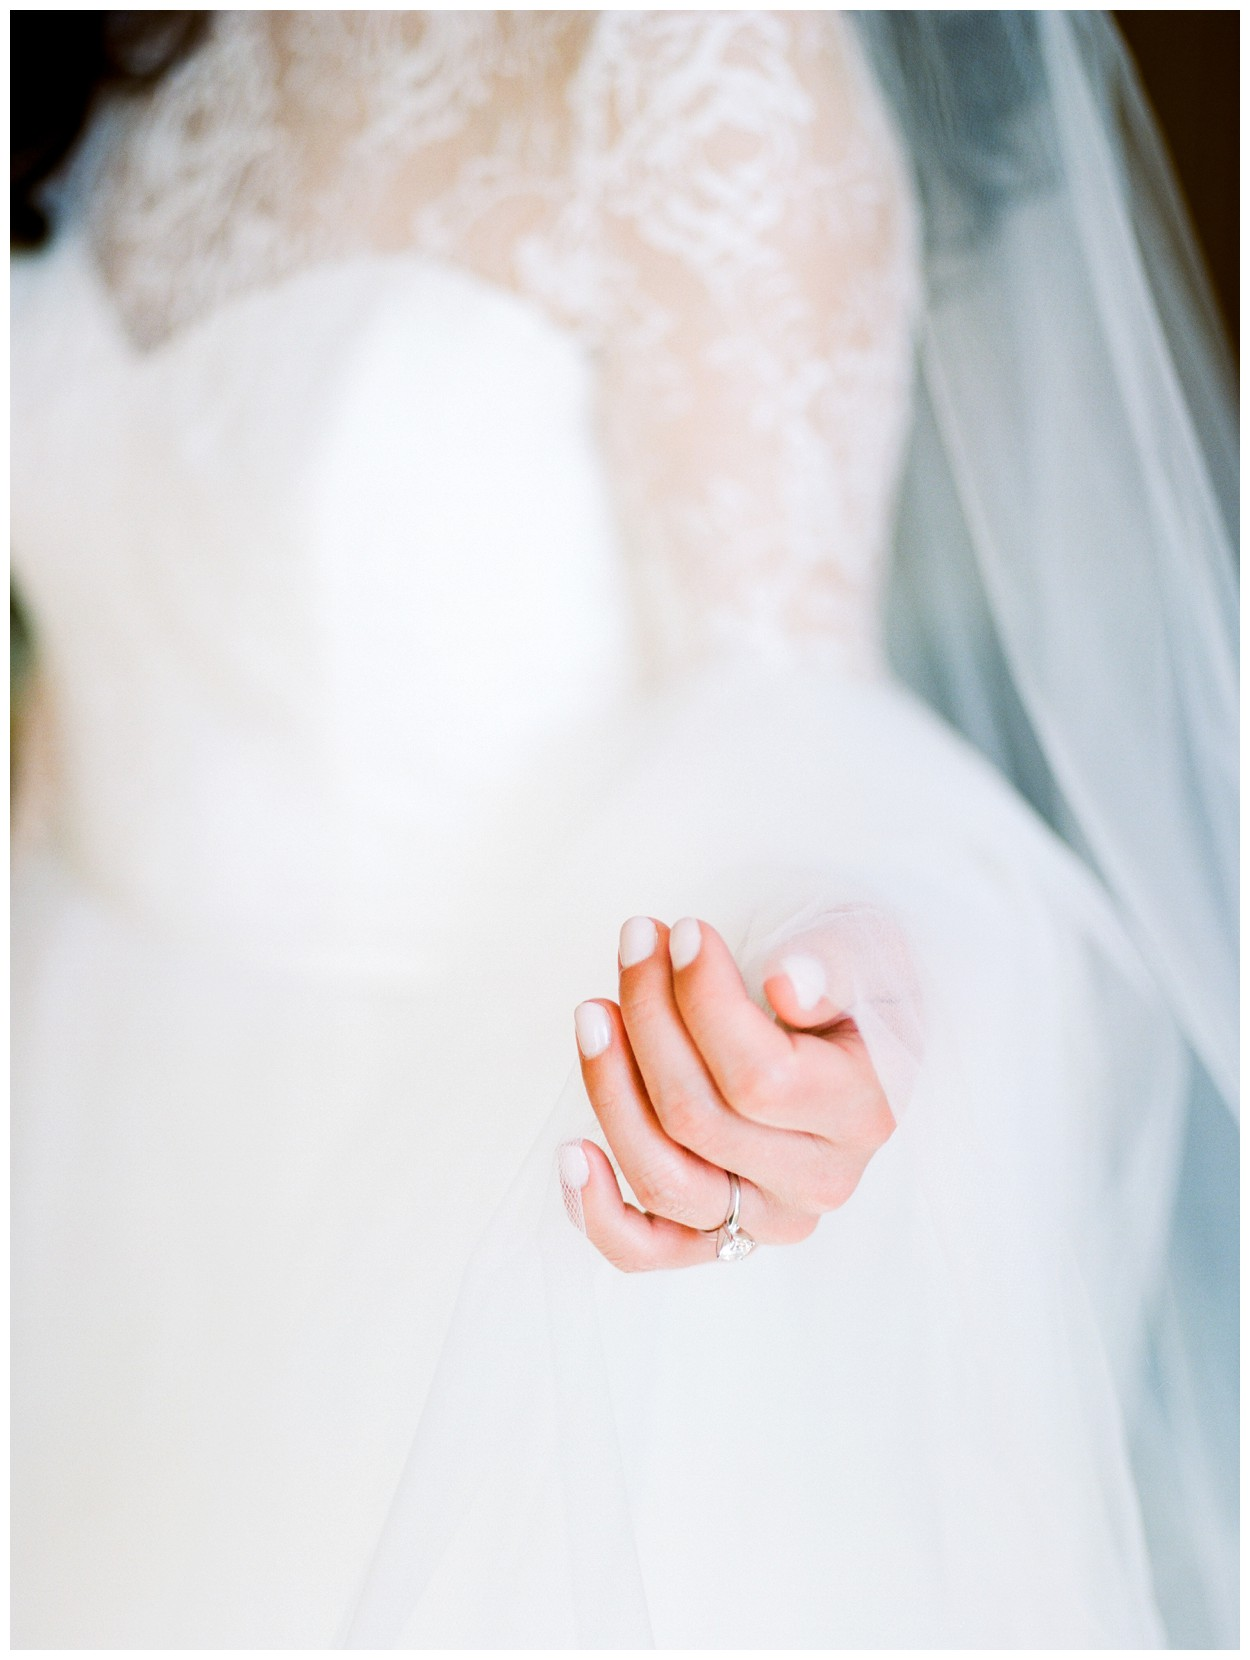 Spring Wedding in Shades of Pink at the Park Hyatt Washington DC by fine art wedding photographer Lissa Ryan Photography bride holding veil